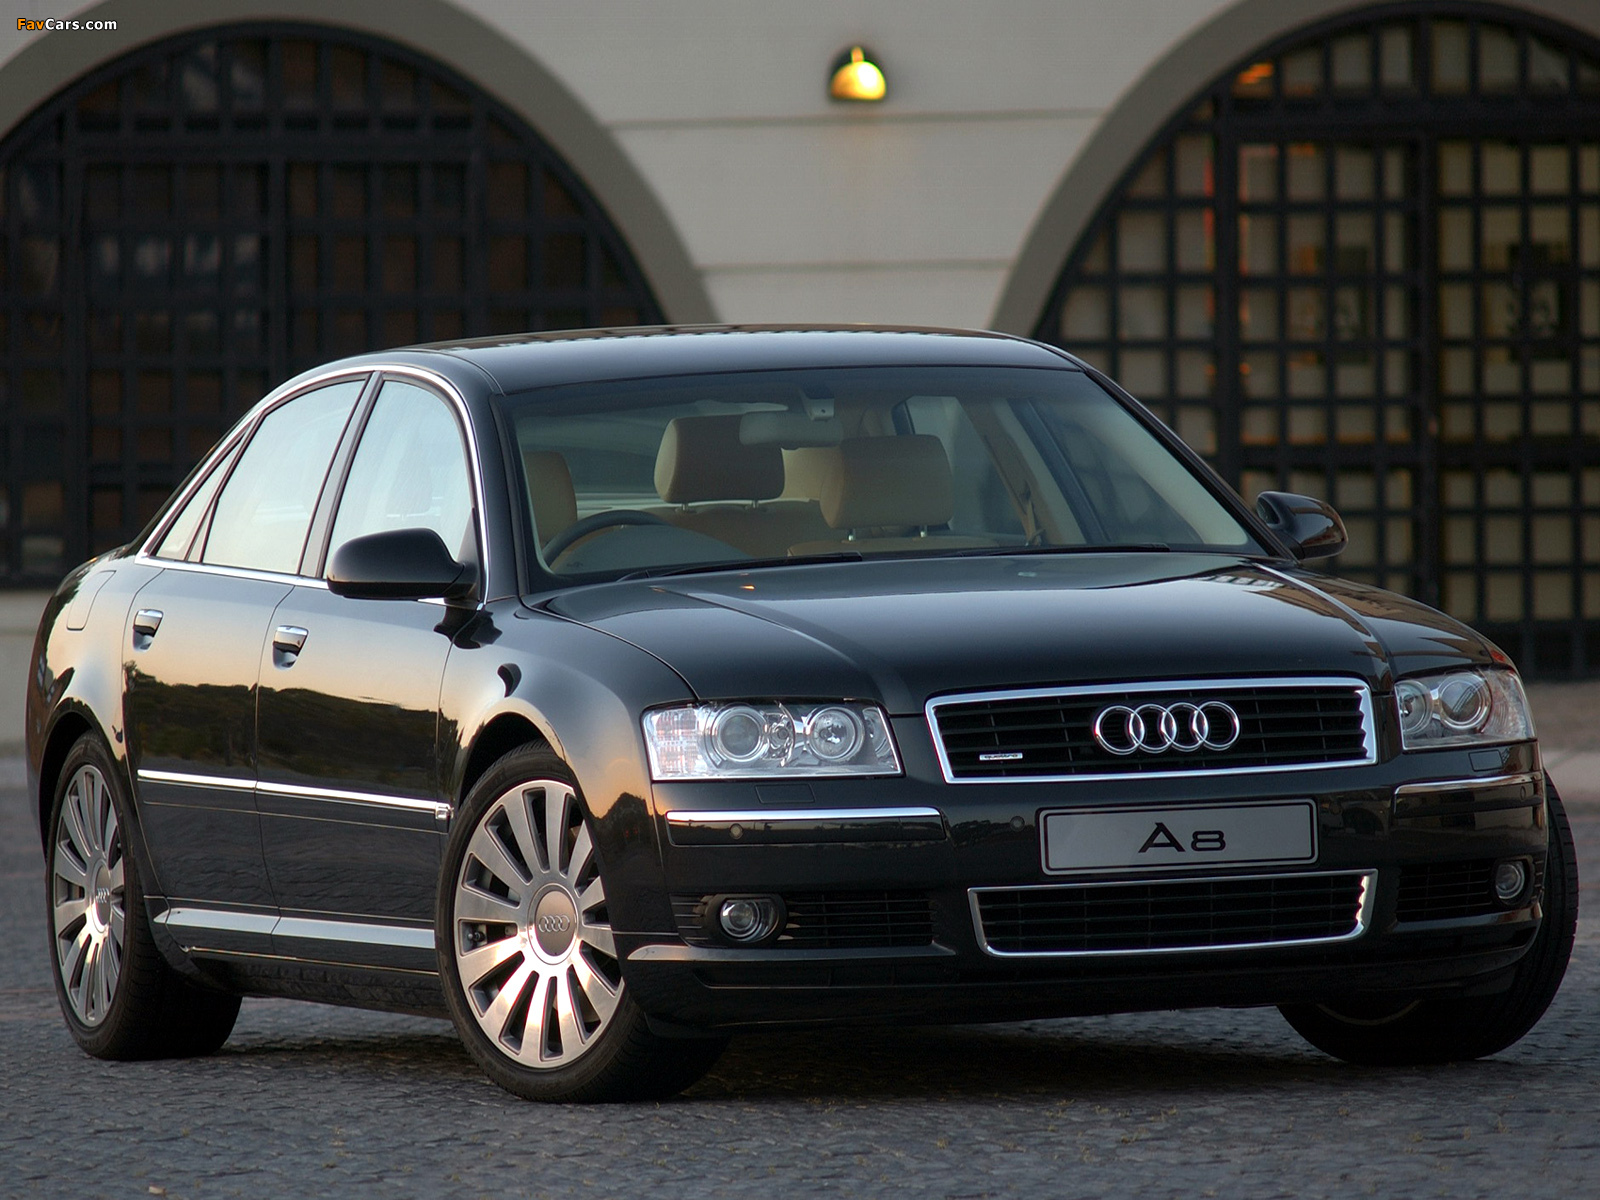 Wallpapers Of Audi A8 4 2 Quattro Za Spec D3 2003 05